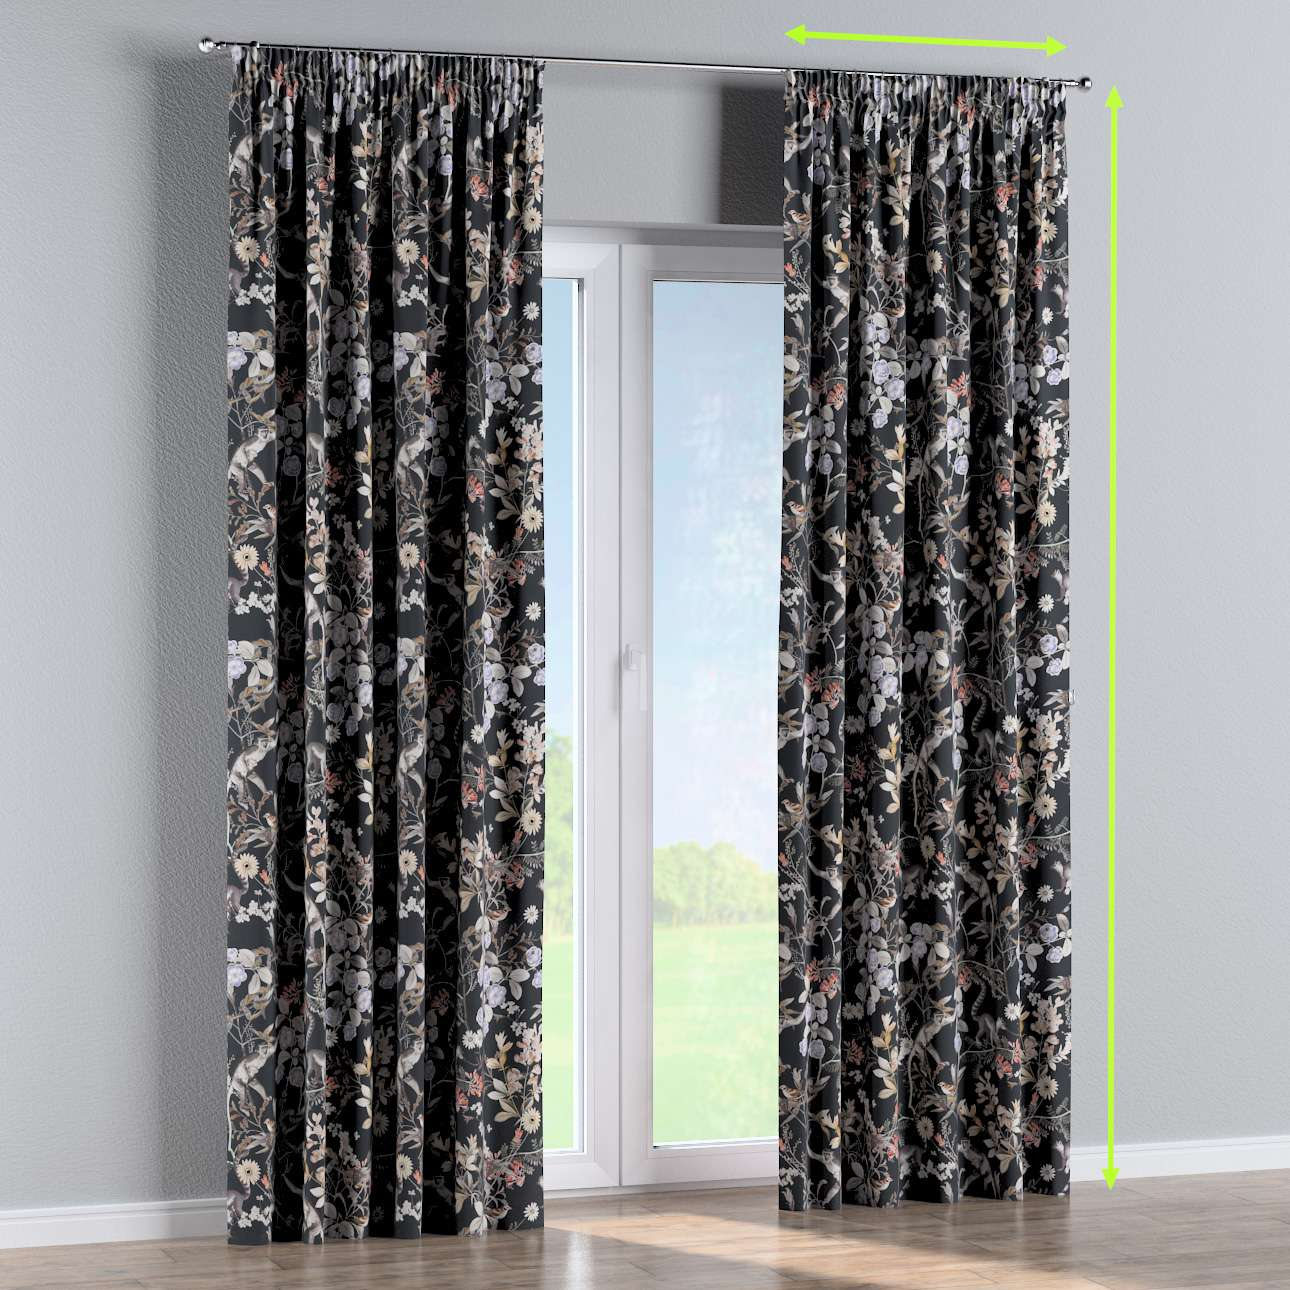 Pencil pleat curtain in collection Tropical Island, fabric: 142-60